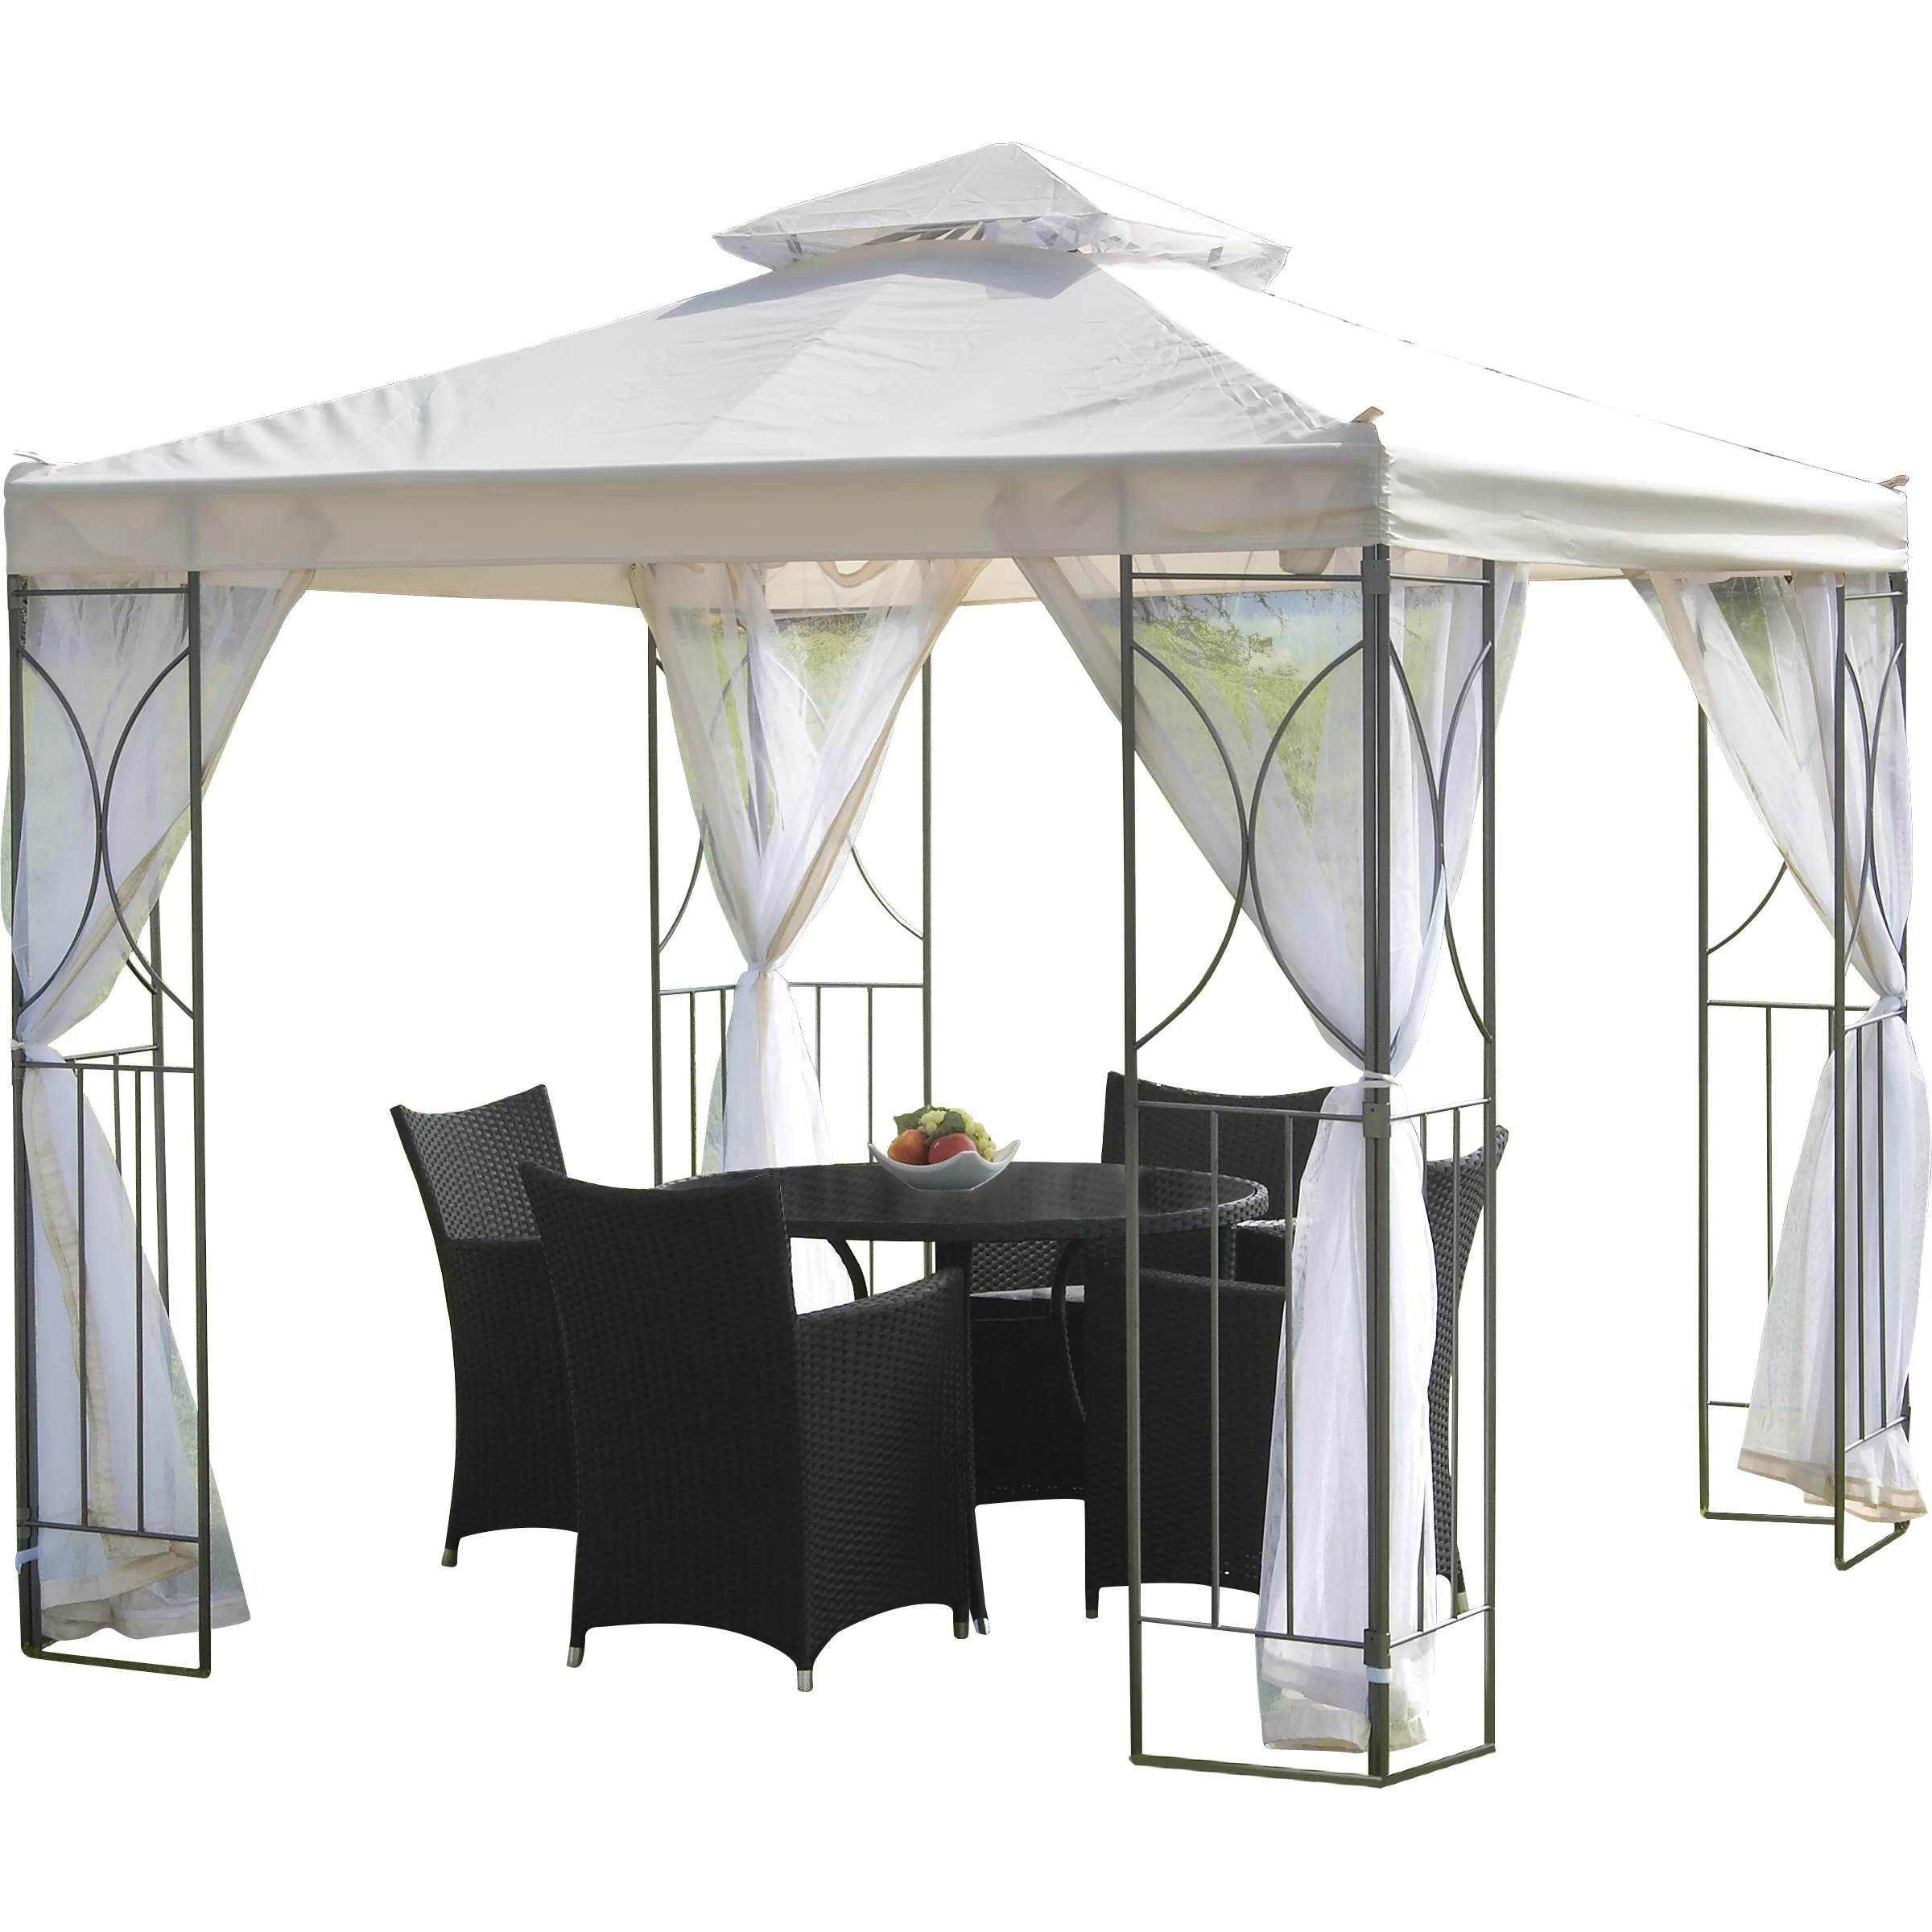 SunTime Outdoor Living Polenza 8 Ft. W x 8 Ft. D Metal ... on Suntime Outdoor Living  id=87104